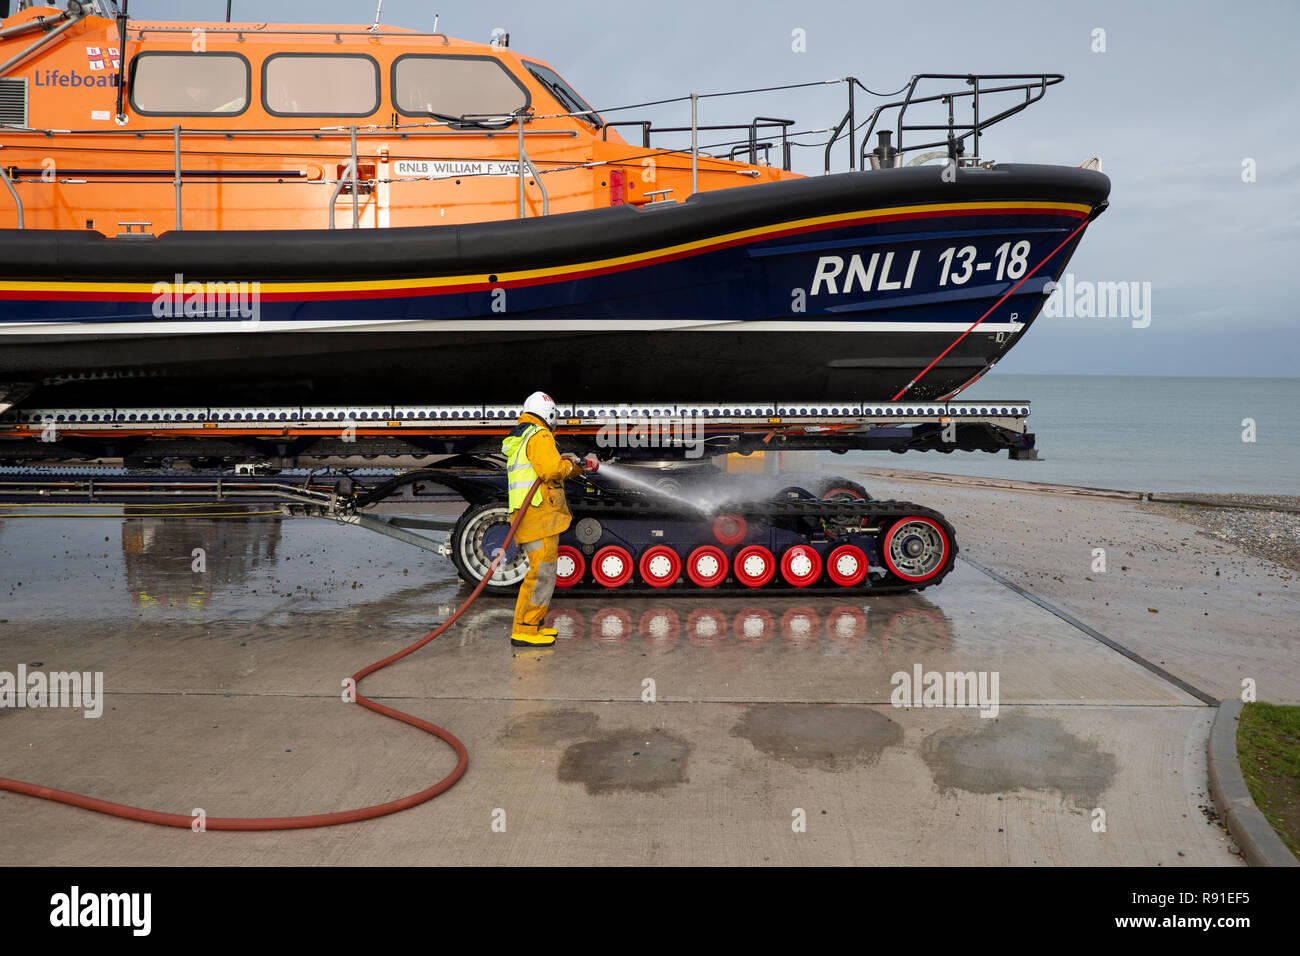 A Llandudno RNLI lifeboat crew member hosing down the tractor gear on the William F Yates Shannon Class lifeboat following sea exercises - Stock Image